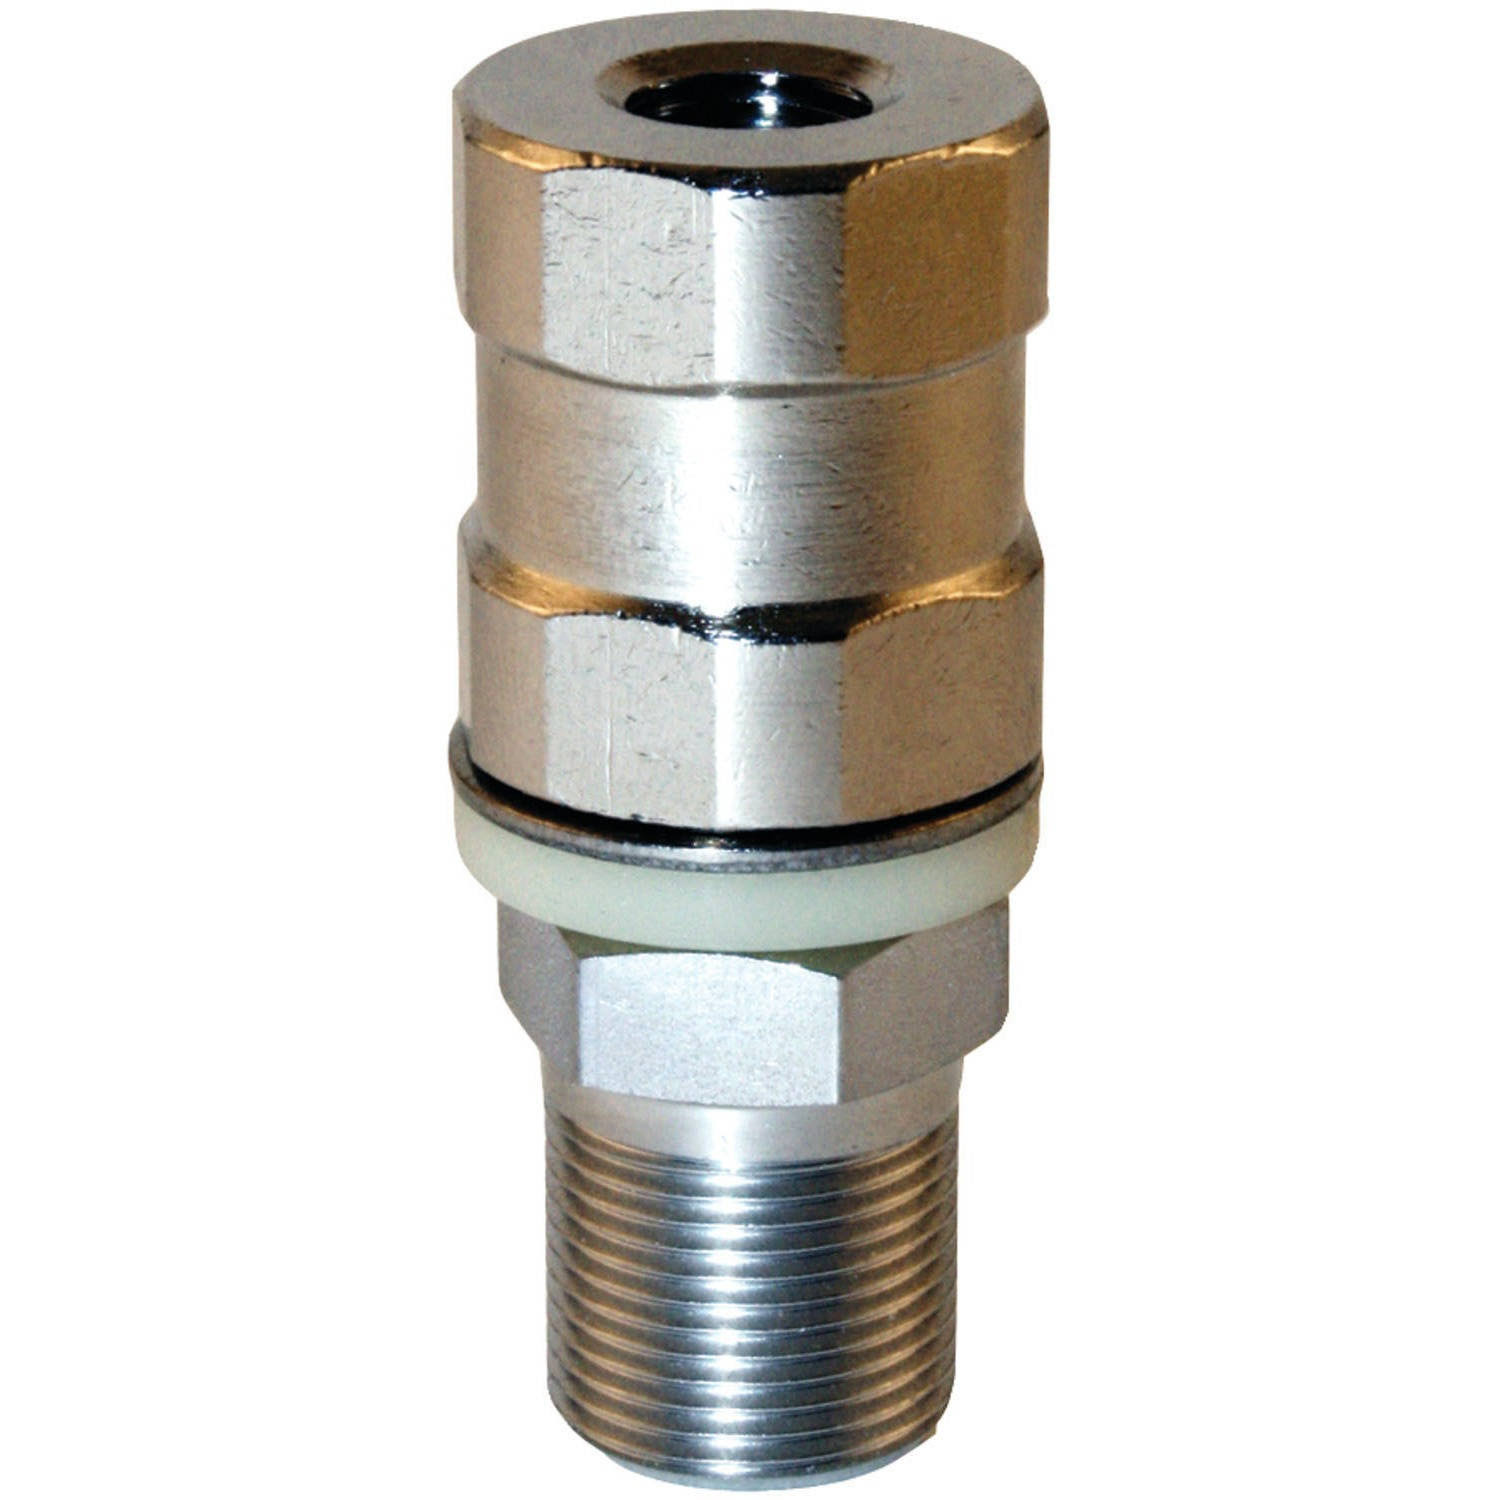 "Tram 208 Super-duty CB Stud So-239 All Thread and Contact Pin - 3/8"" x 24T"